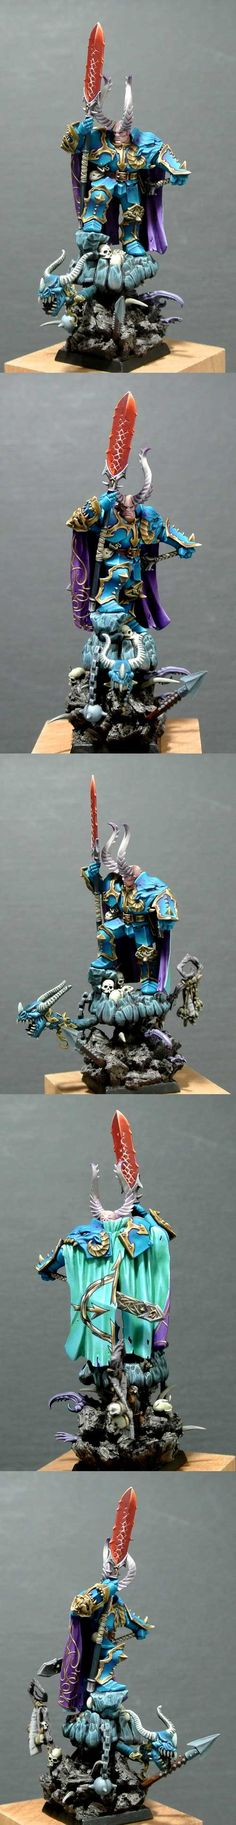 Awesome Thousand Sons